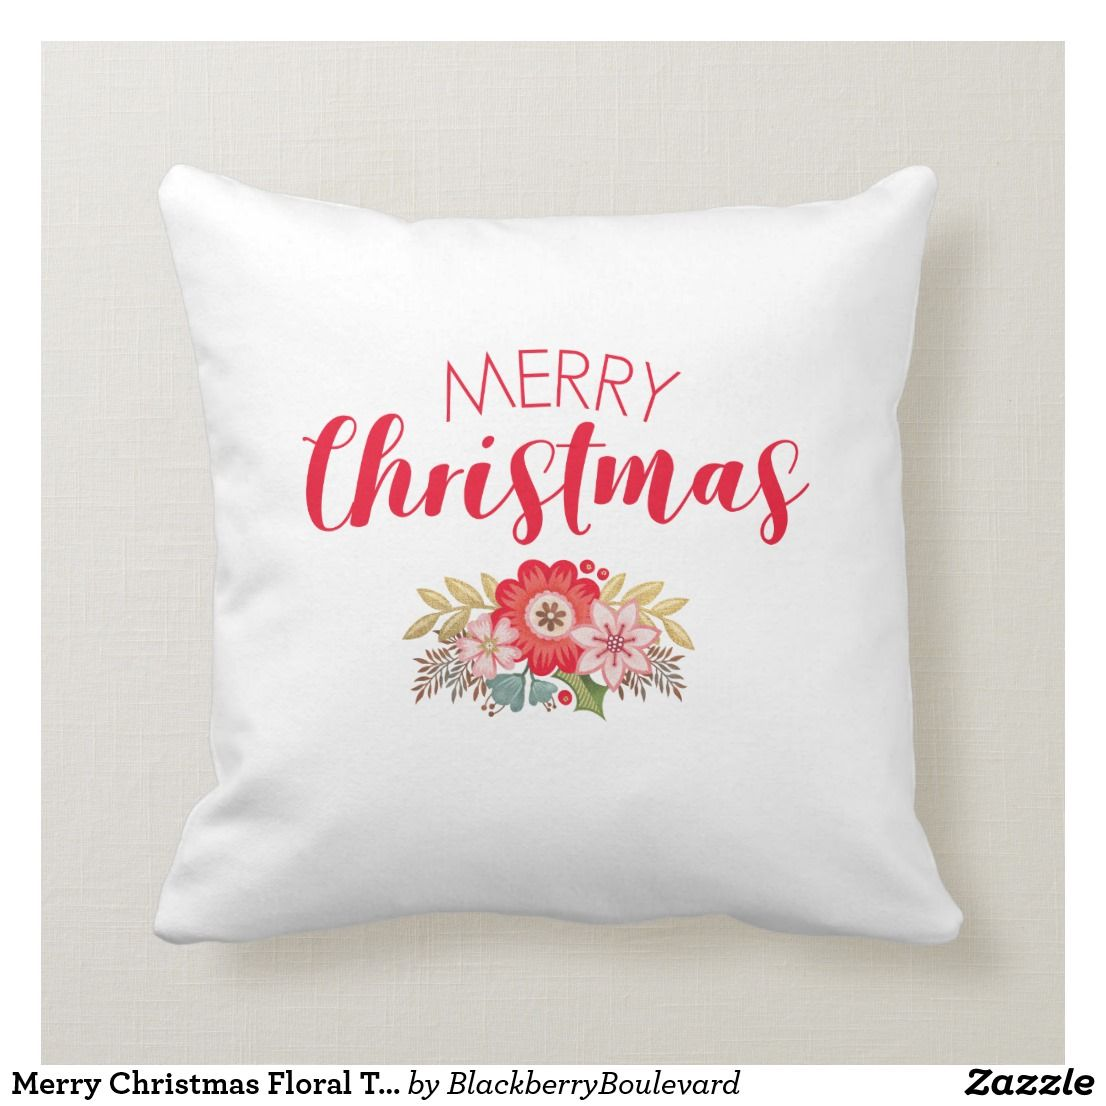 Red White Floral Merry Christmas Throw Pillow Zazzle Com Throw Pillows Christmas Floral Throw Pillows Throw Pillows